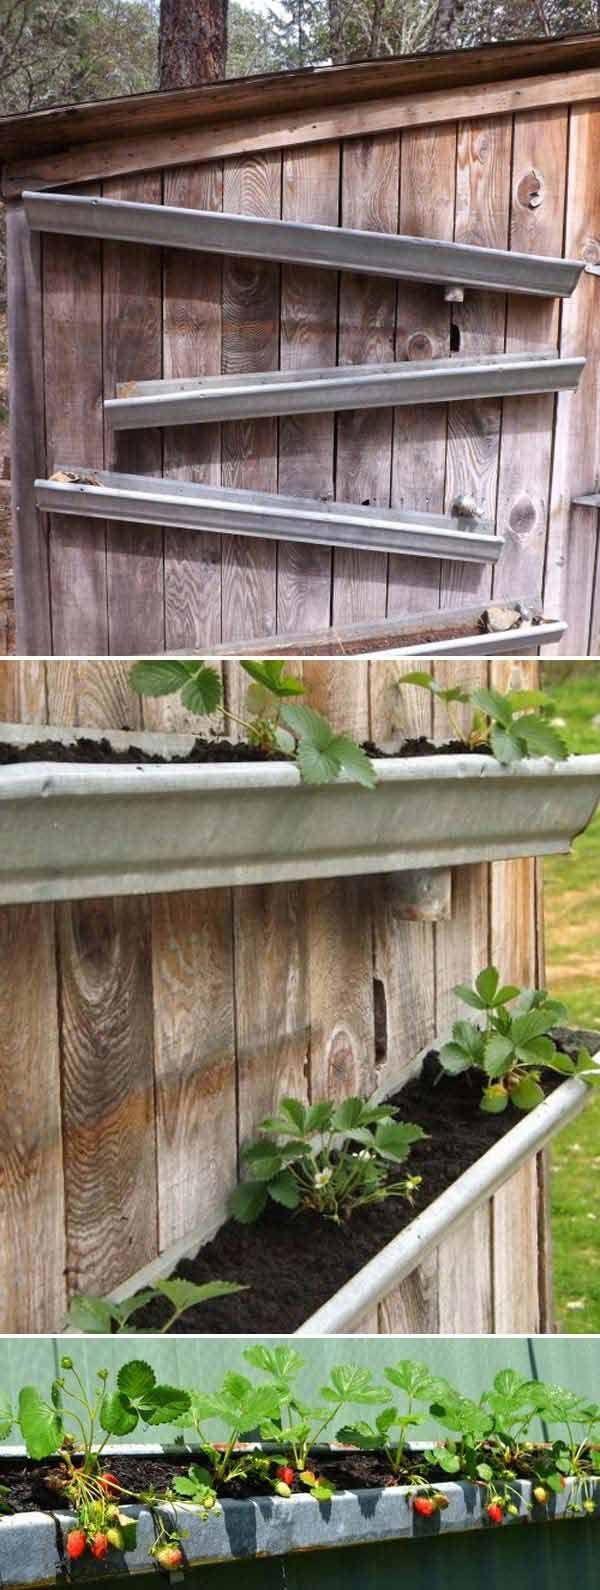 Build a strawberry garden in old rain gutters, they could be mounted on the side of a shed or garden fence.